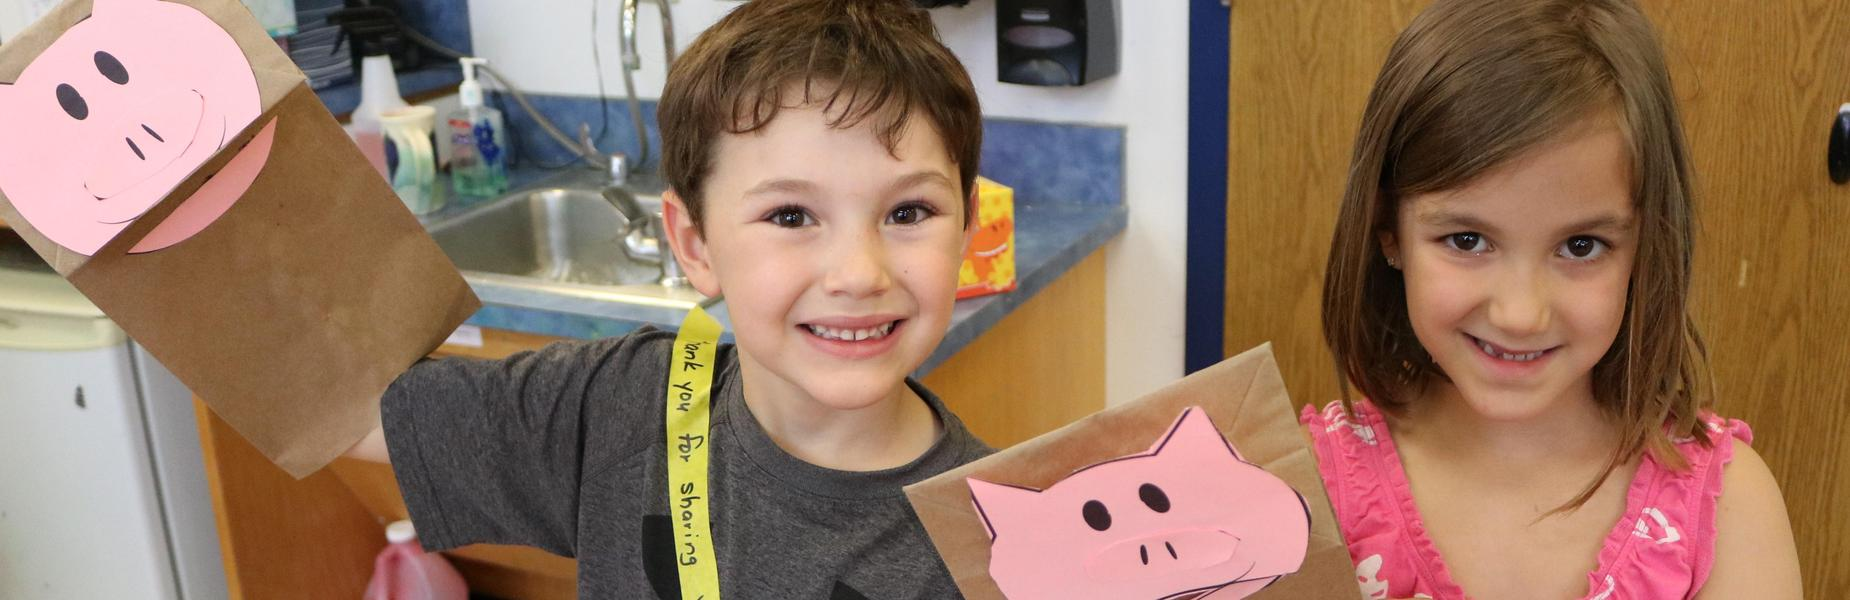 Two kindergartners hold handmade Elephant & Piggy puppets.